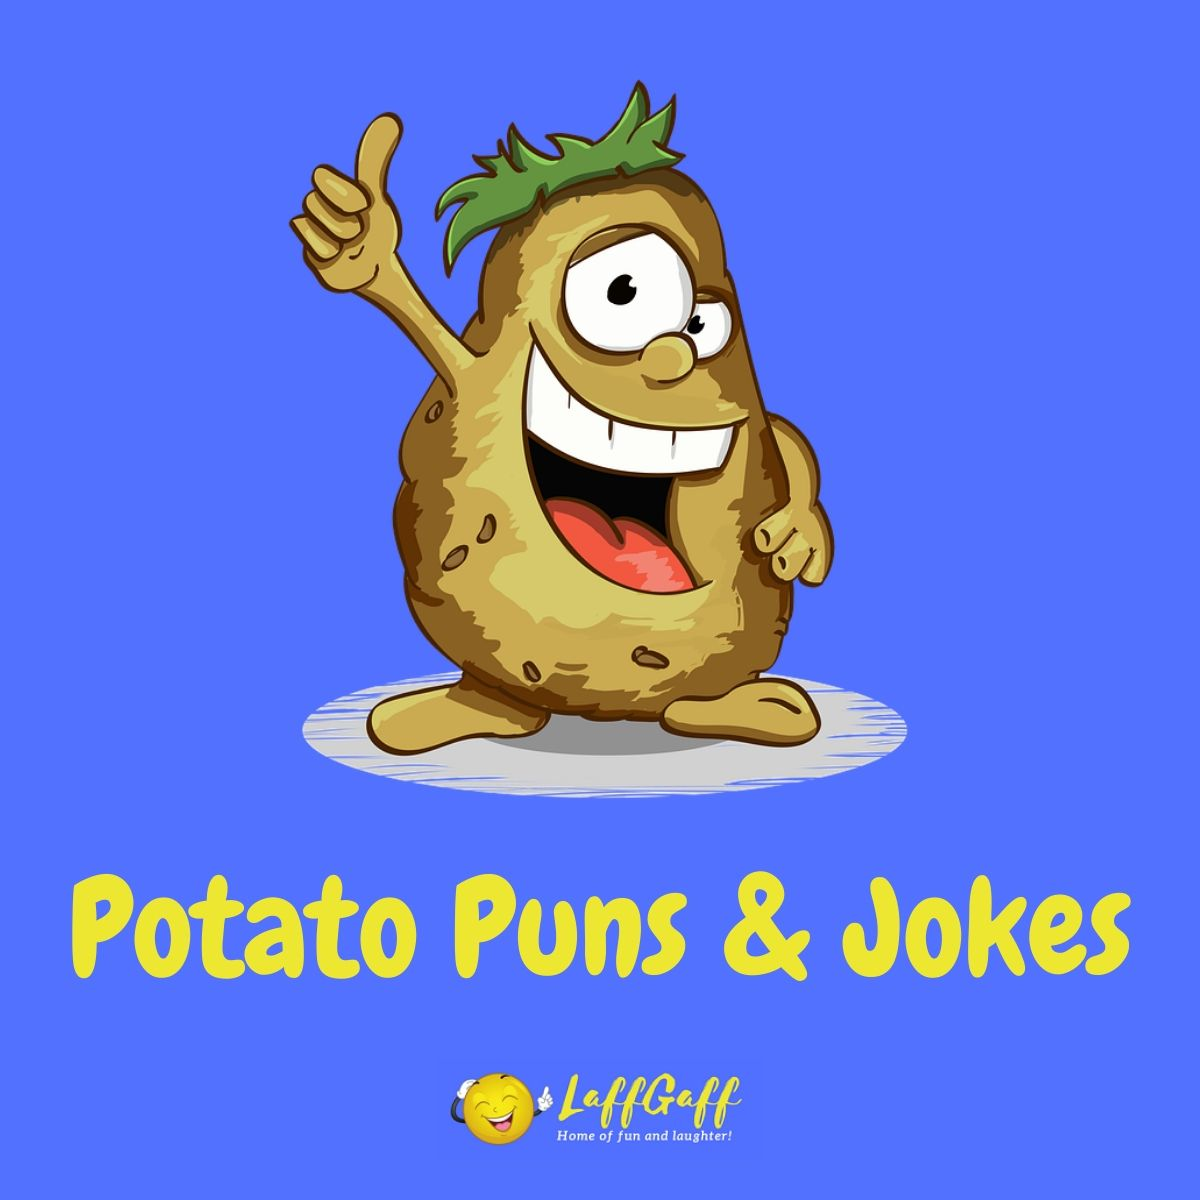 Featured image for a page of funny potato puns and jokes.